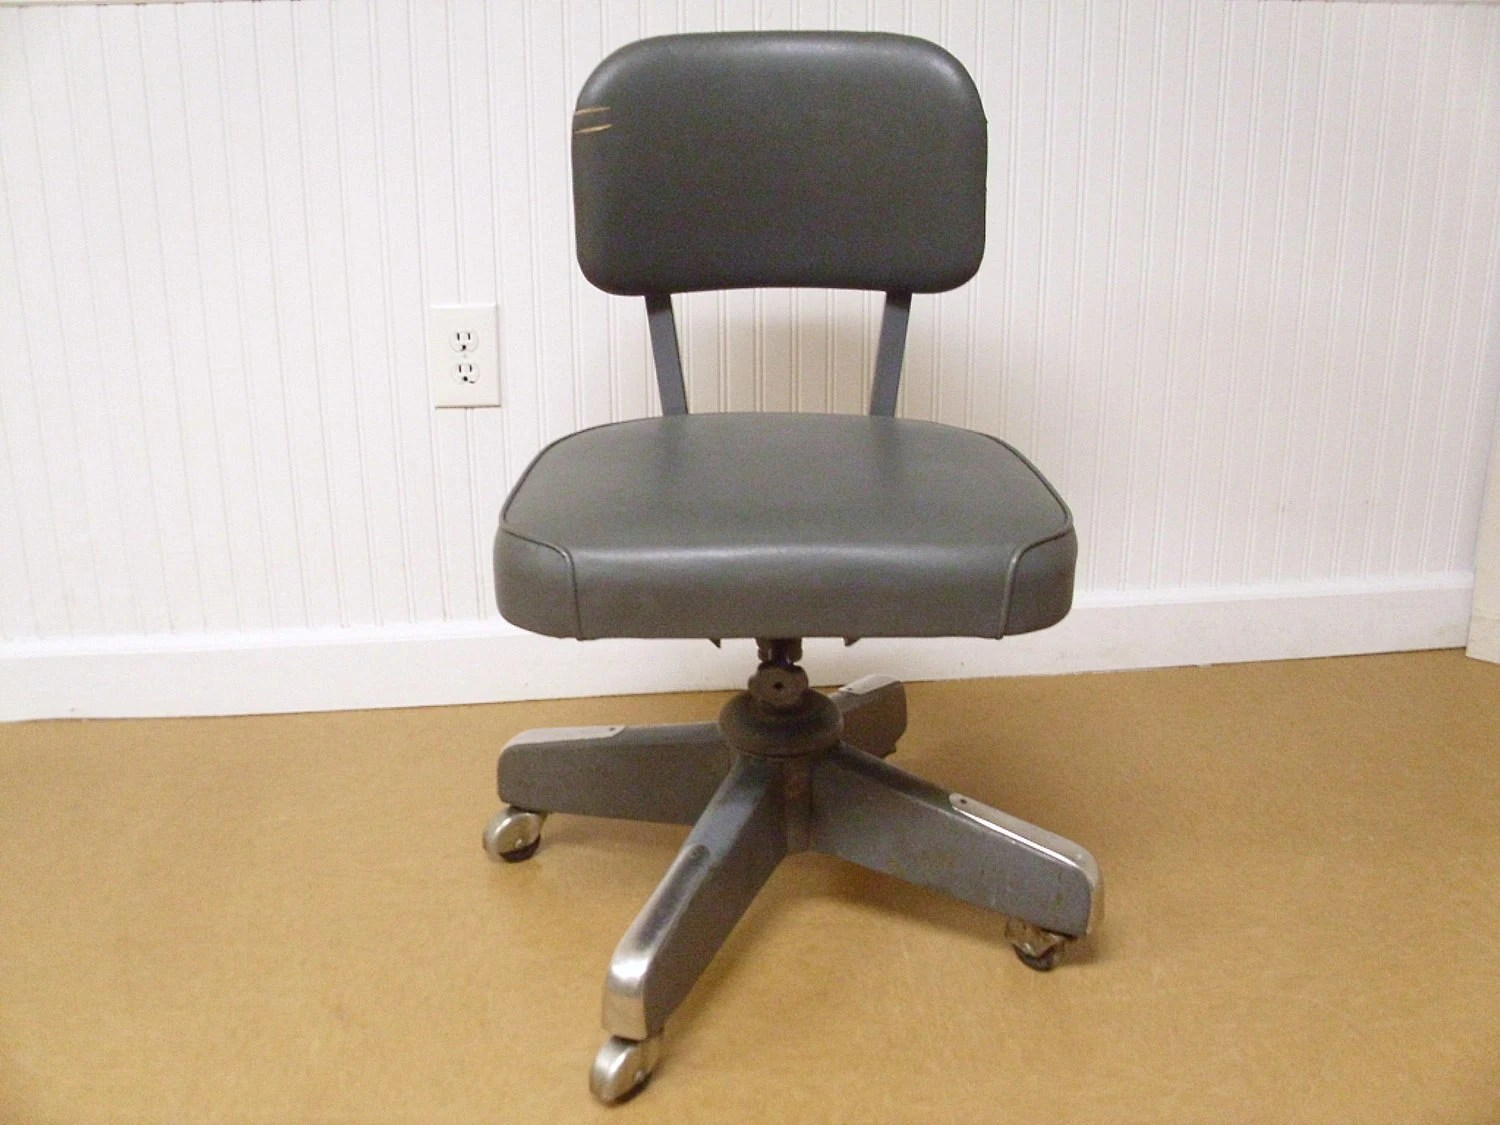 Retro Desk Chair Vintage Mid Century Industrial Office Chair